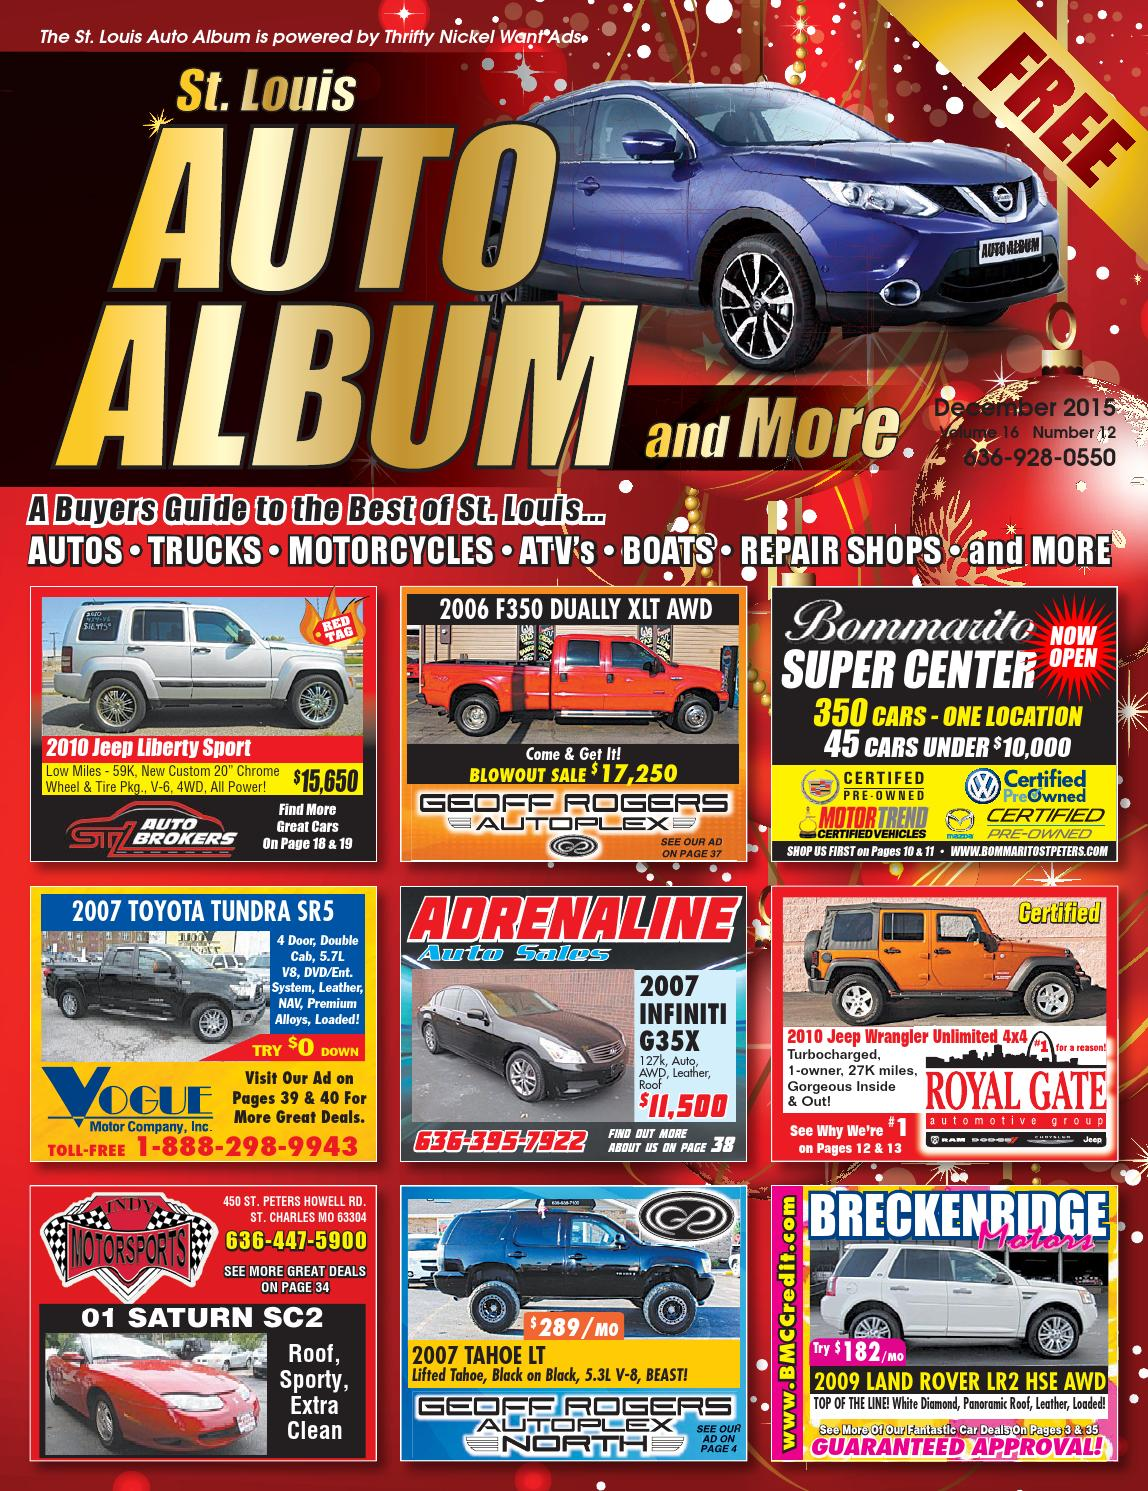 Thrifty Nickel Cars For Sale >> December 2015 Auto Album by Thrifty Nickel Want Ads St. Louis - Issuu